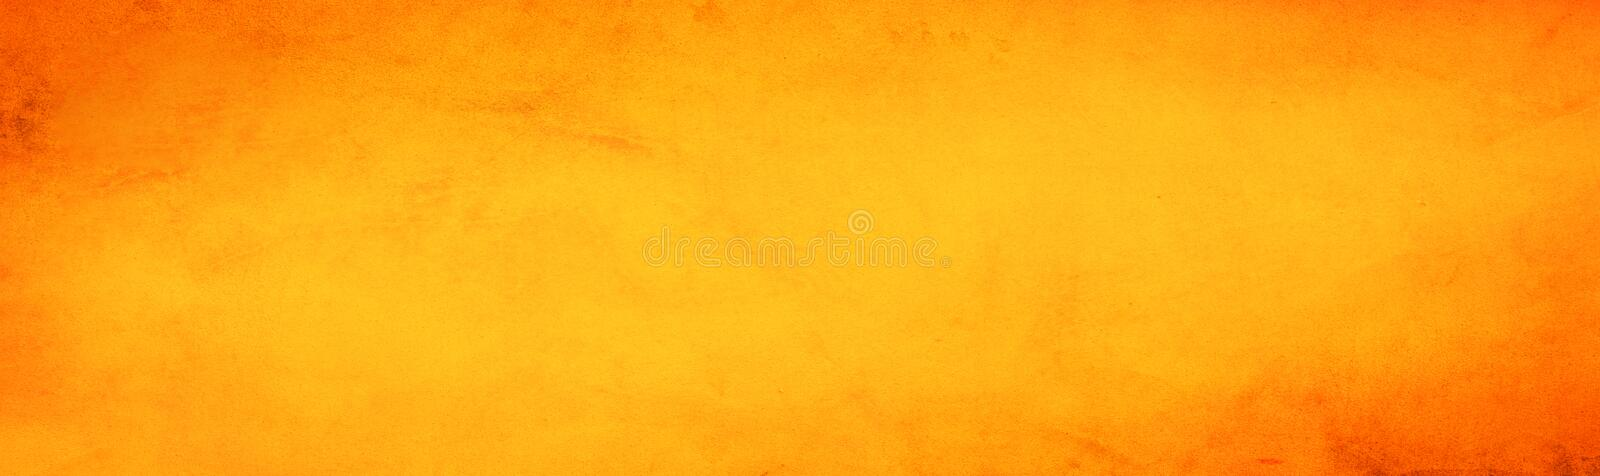 Horizontal yellow and orange grunge texture cement or concrete wall banner, blank background.  vector illustration